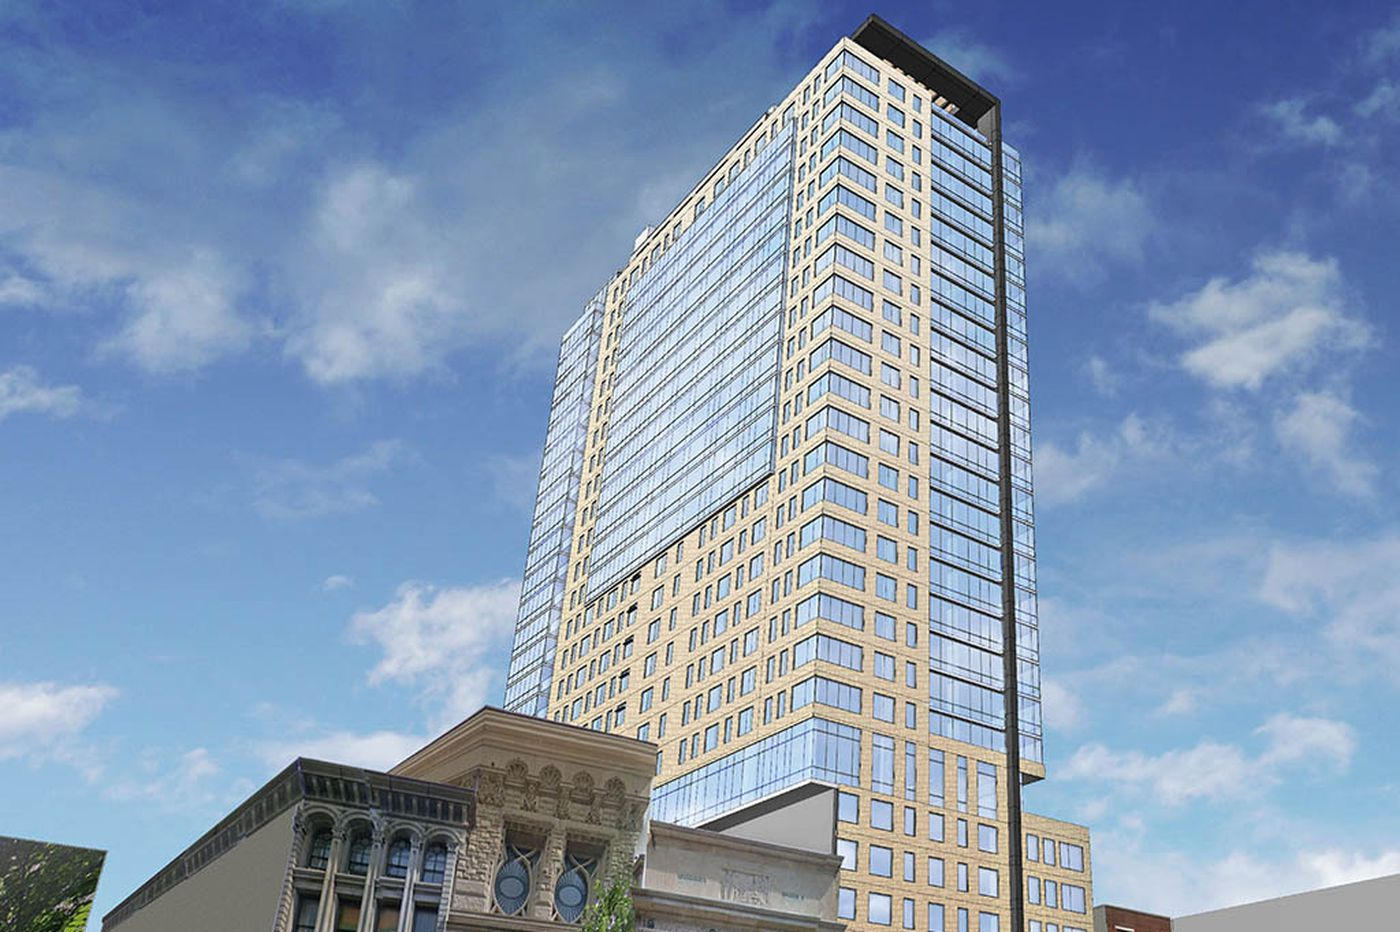 PhillyDeals: Permission to be sought for apartment tower at 709 Chestnut